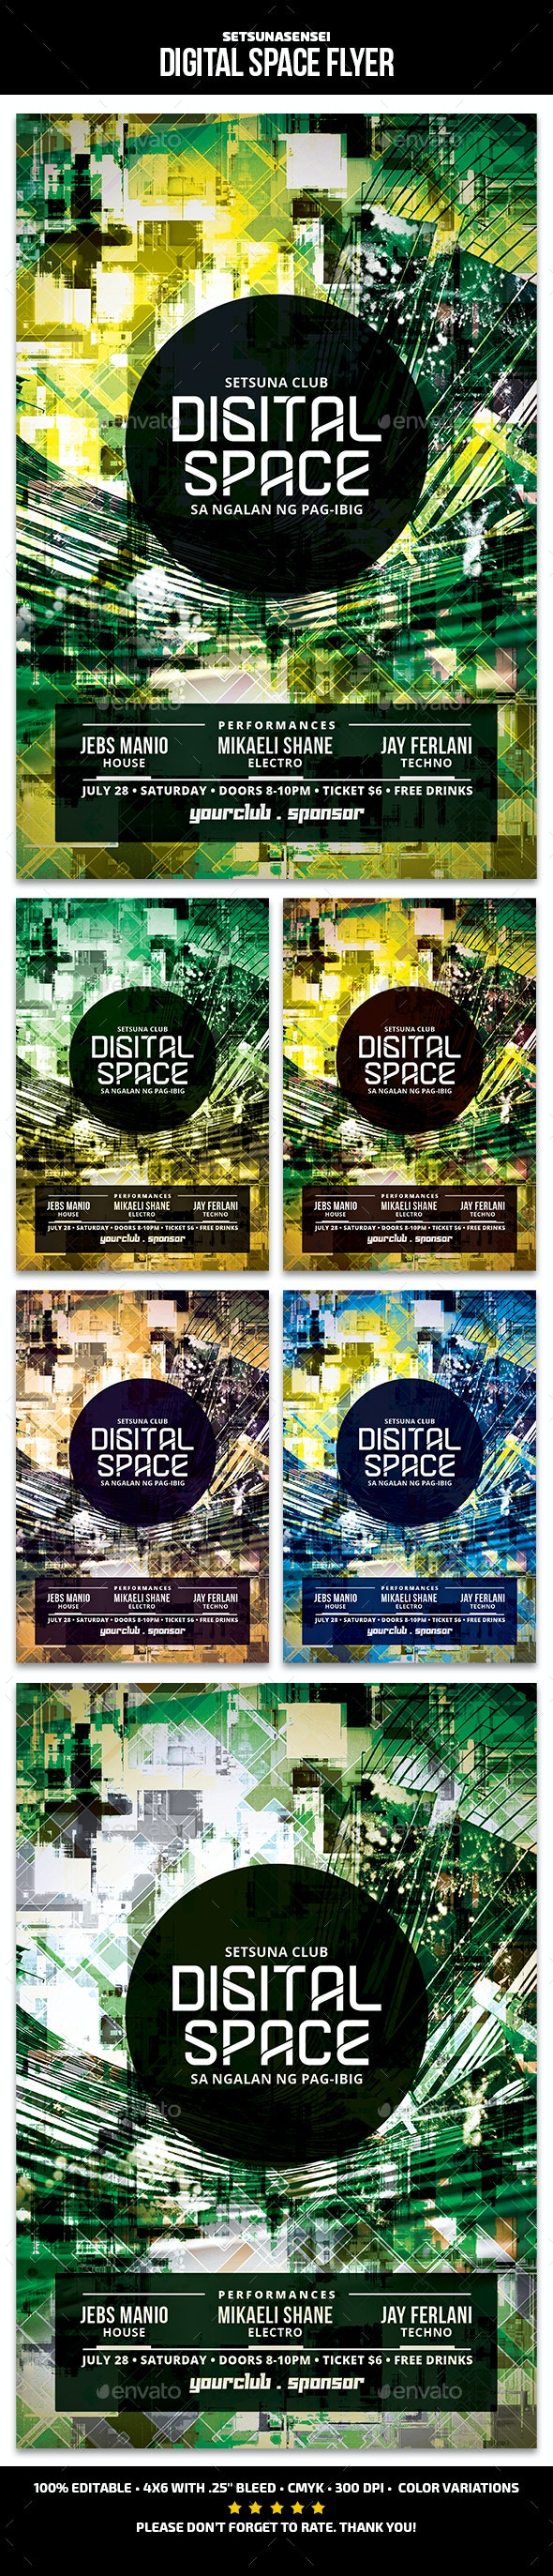 Digital Space Flyer - Events Flyers